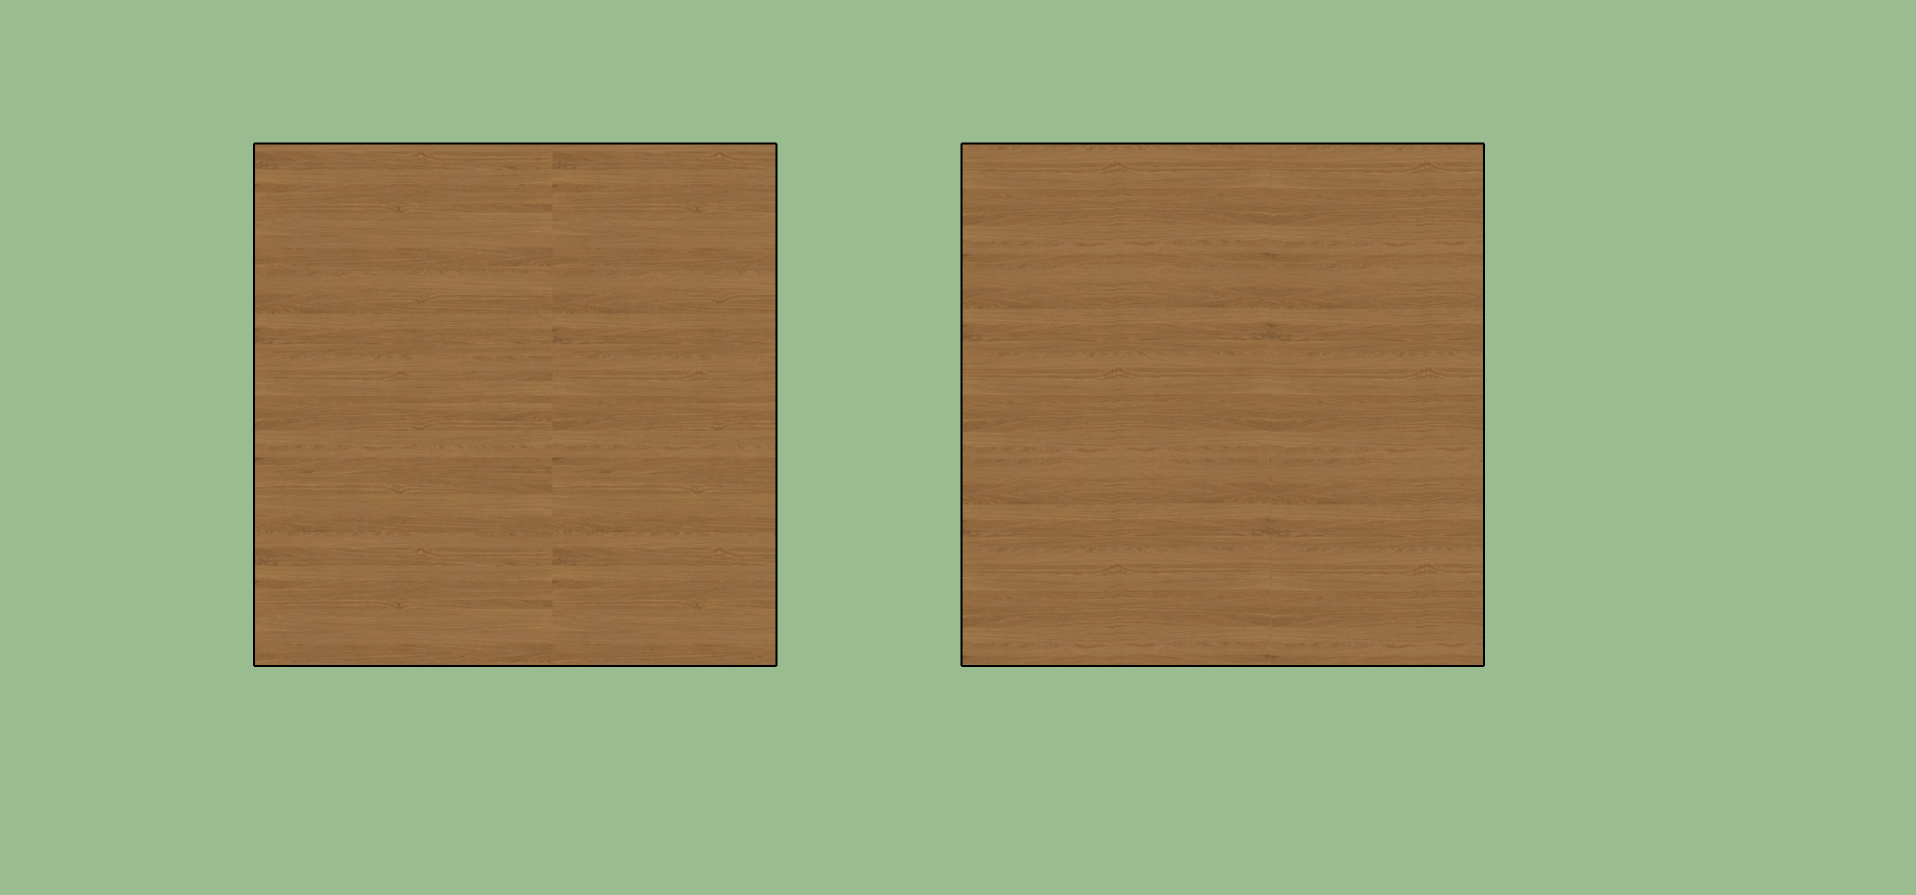 Textures in sketchup - Router Forums